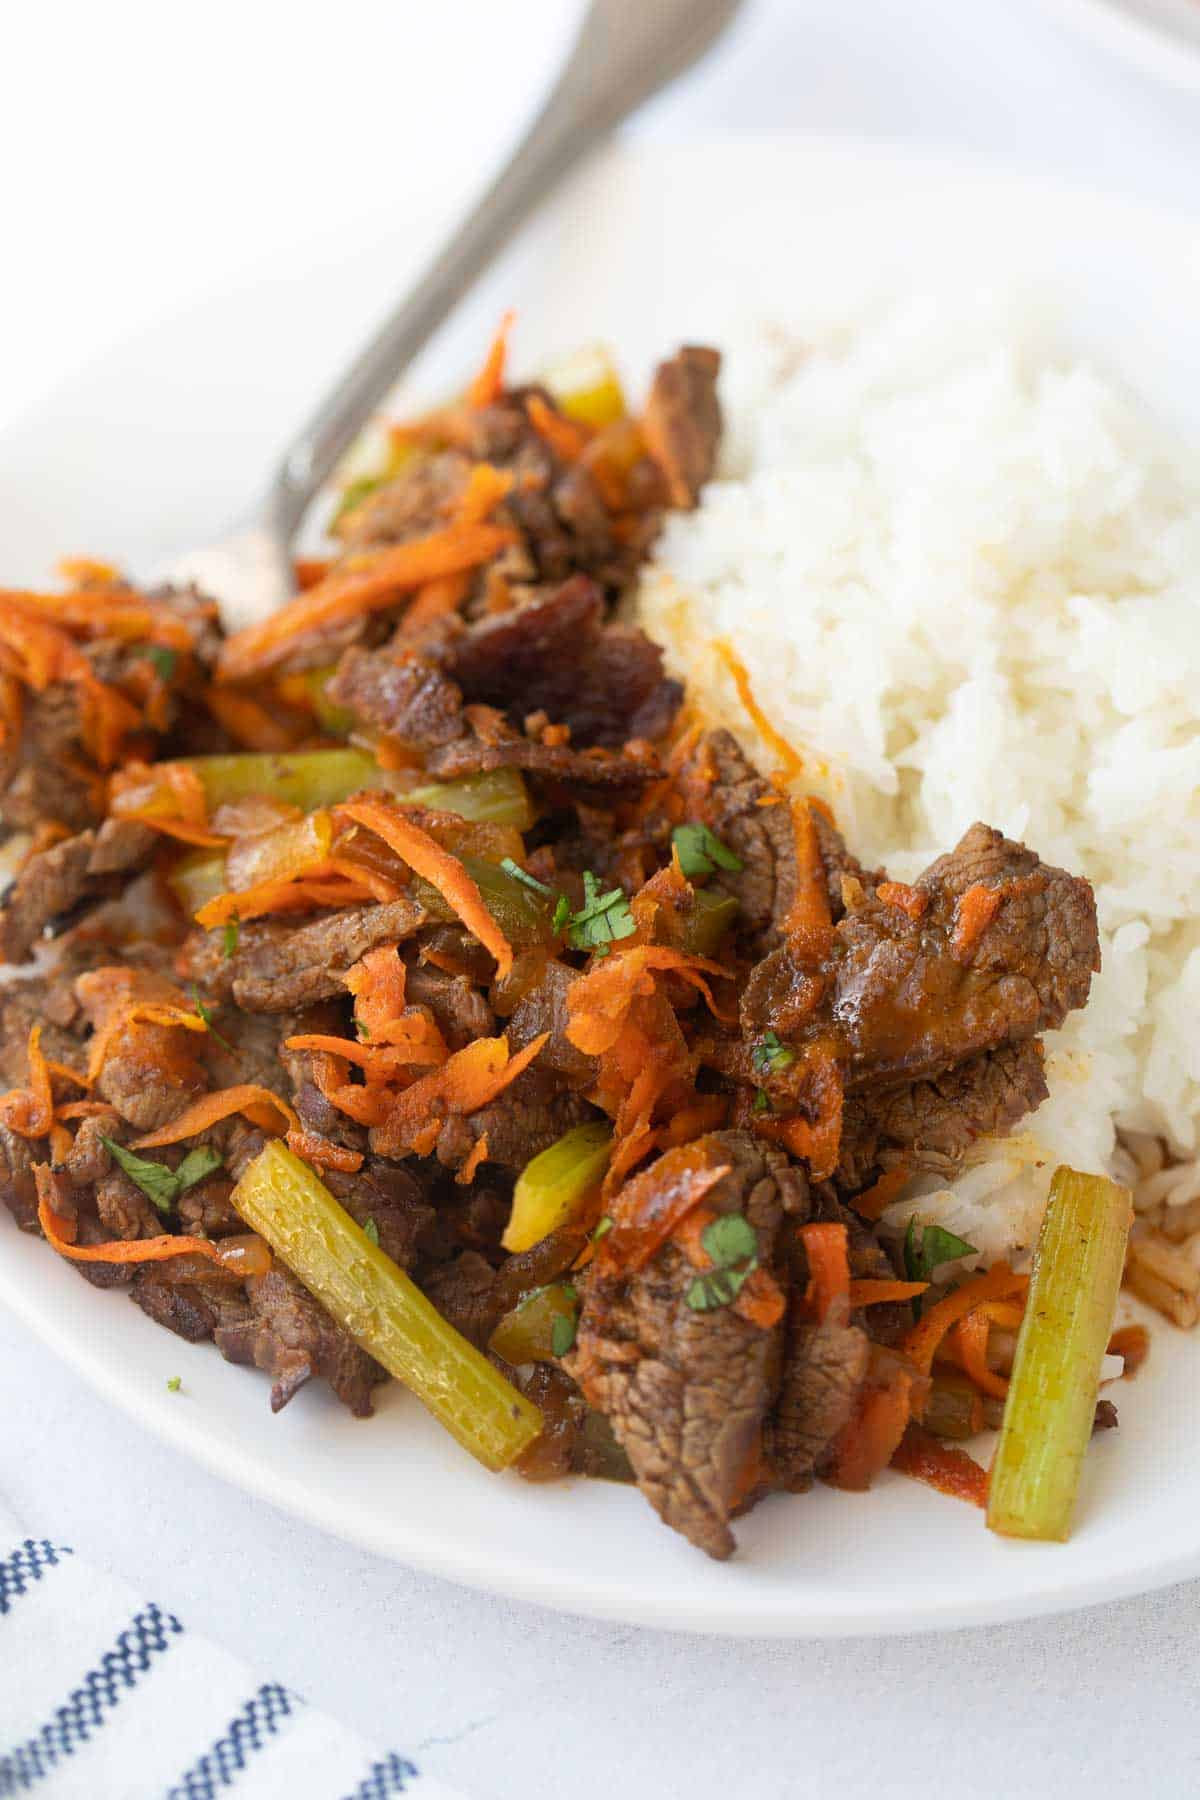 close up of thin slices of cooked flank steak, carrots and green peppers on bed of white rice.